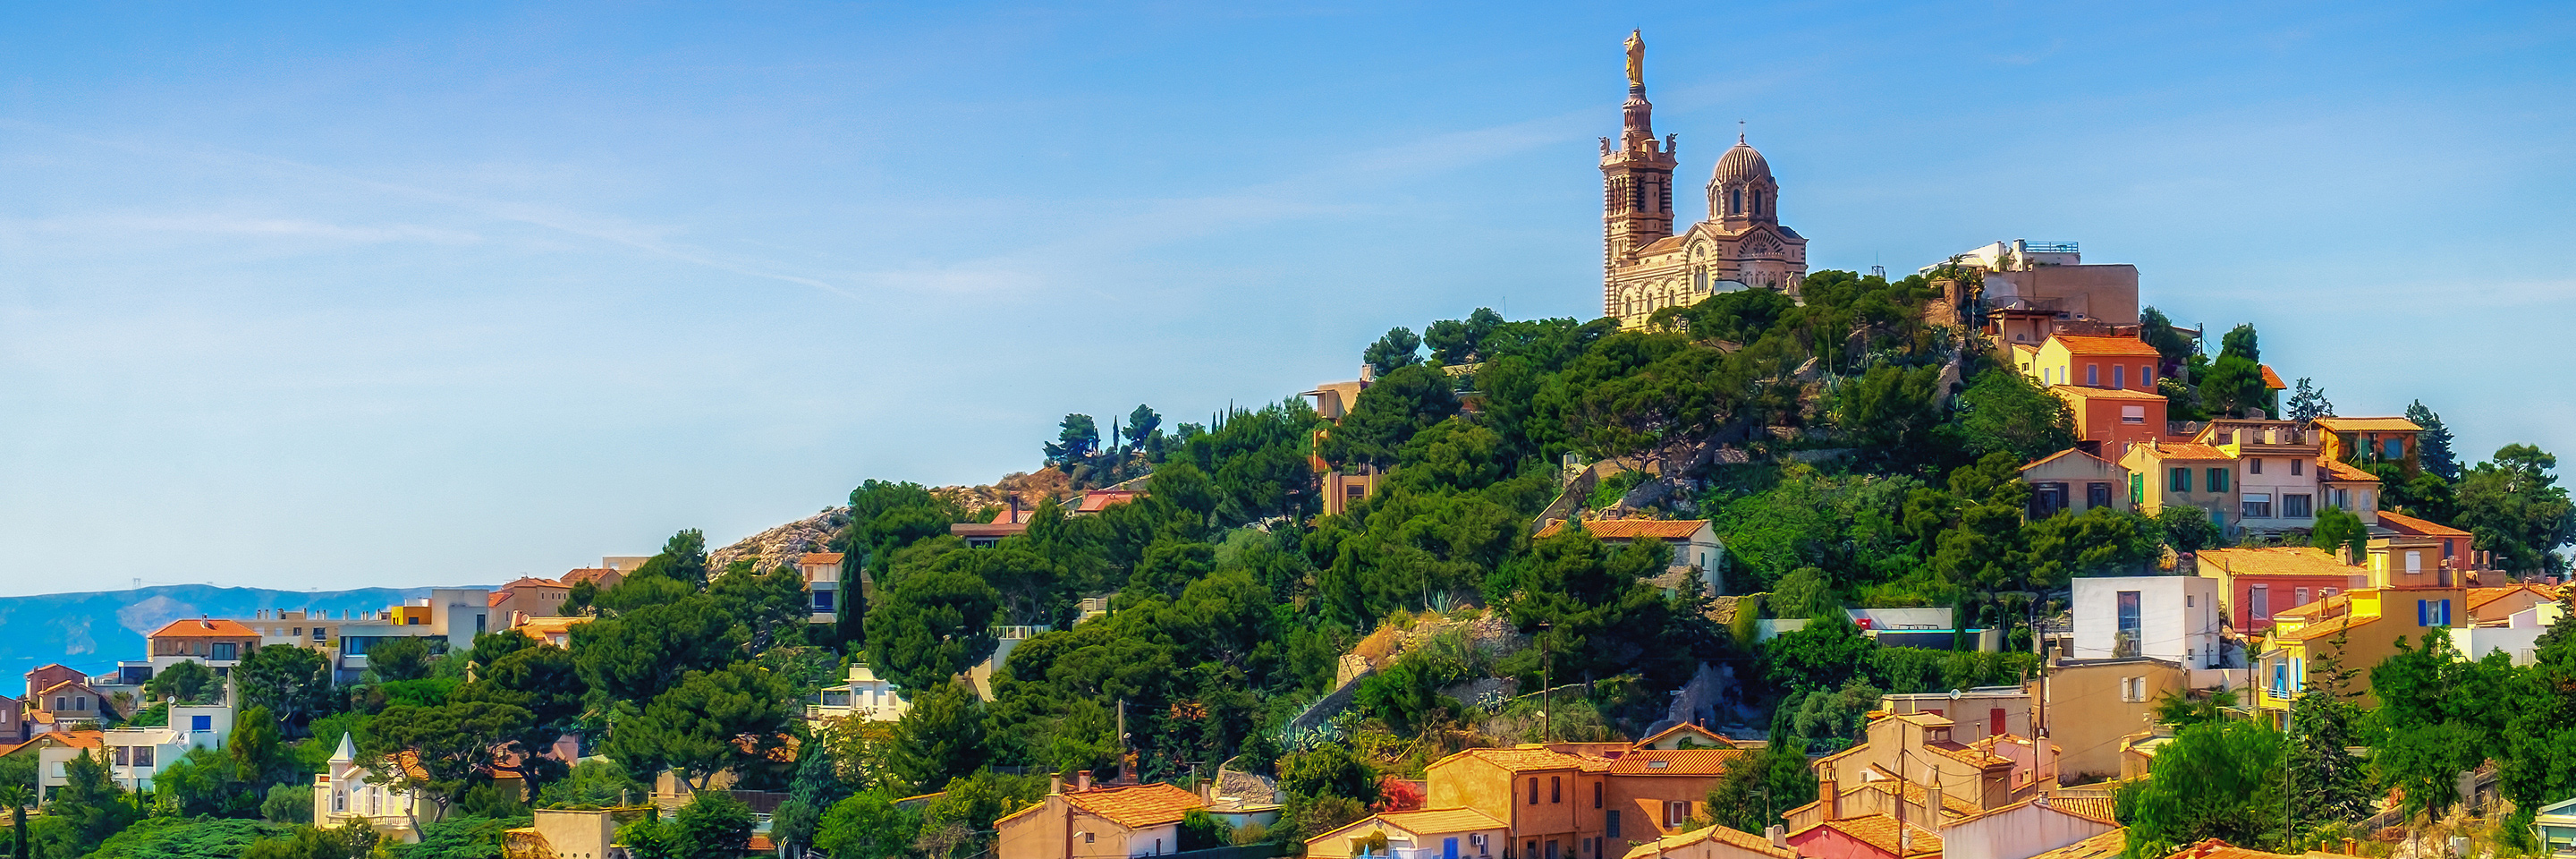 Grand France WWII Remembrance & History Cruise with 1 Night in Marseille (Southbound)